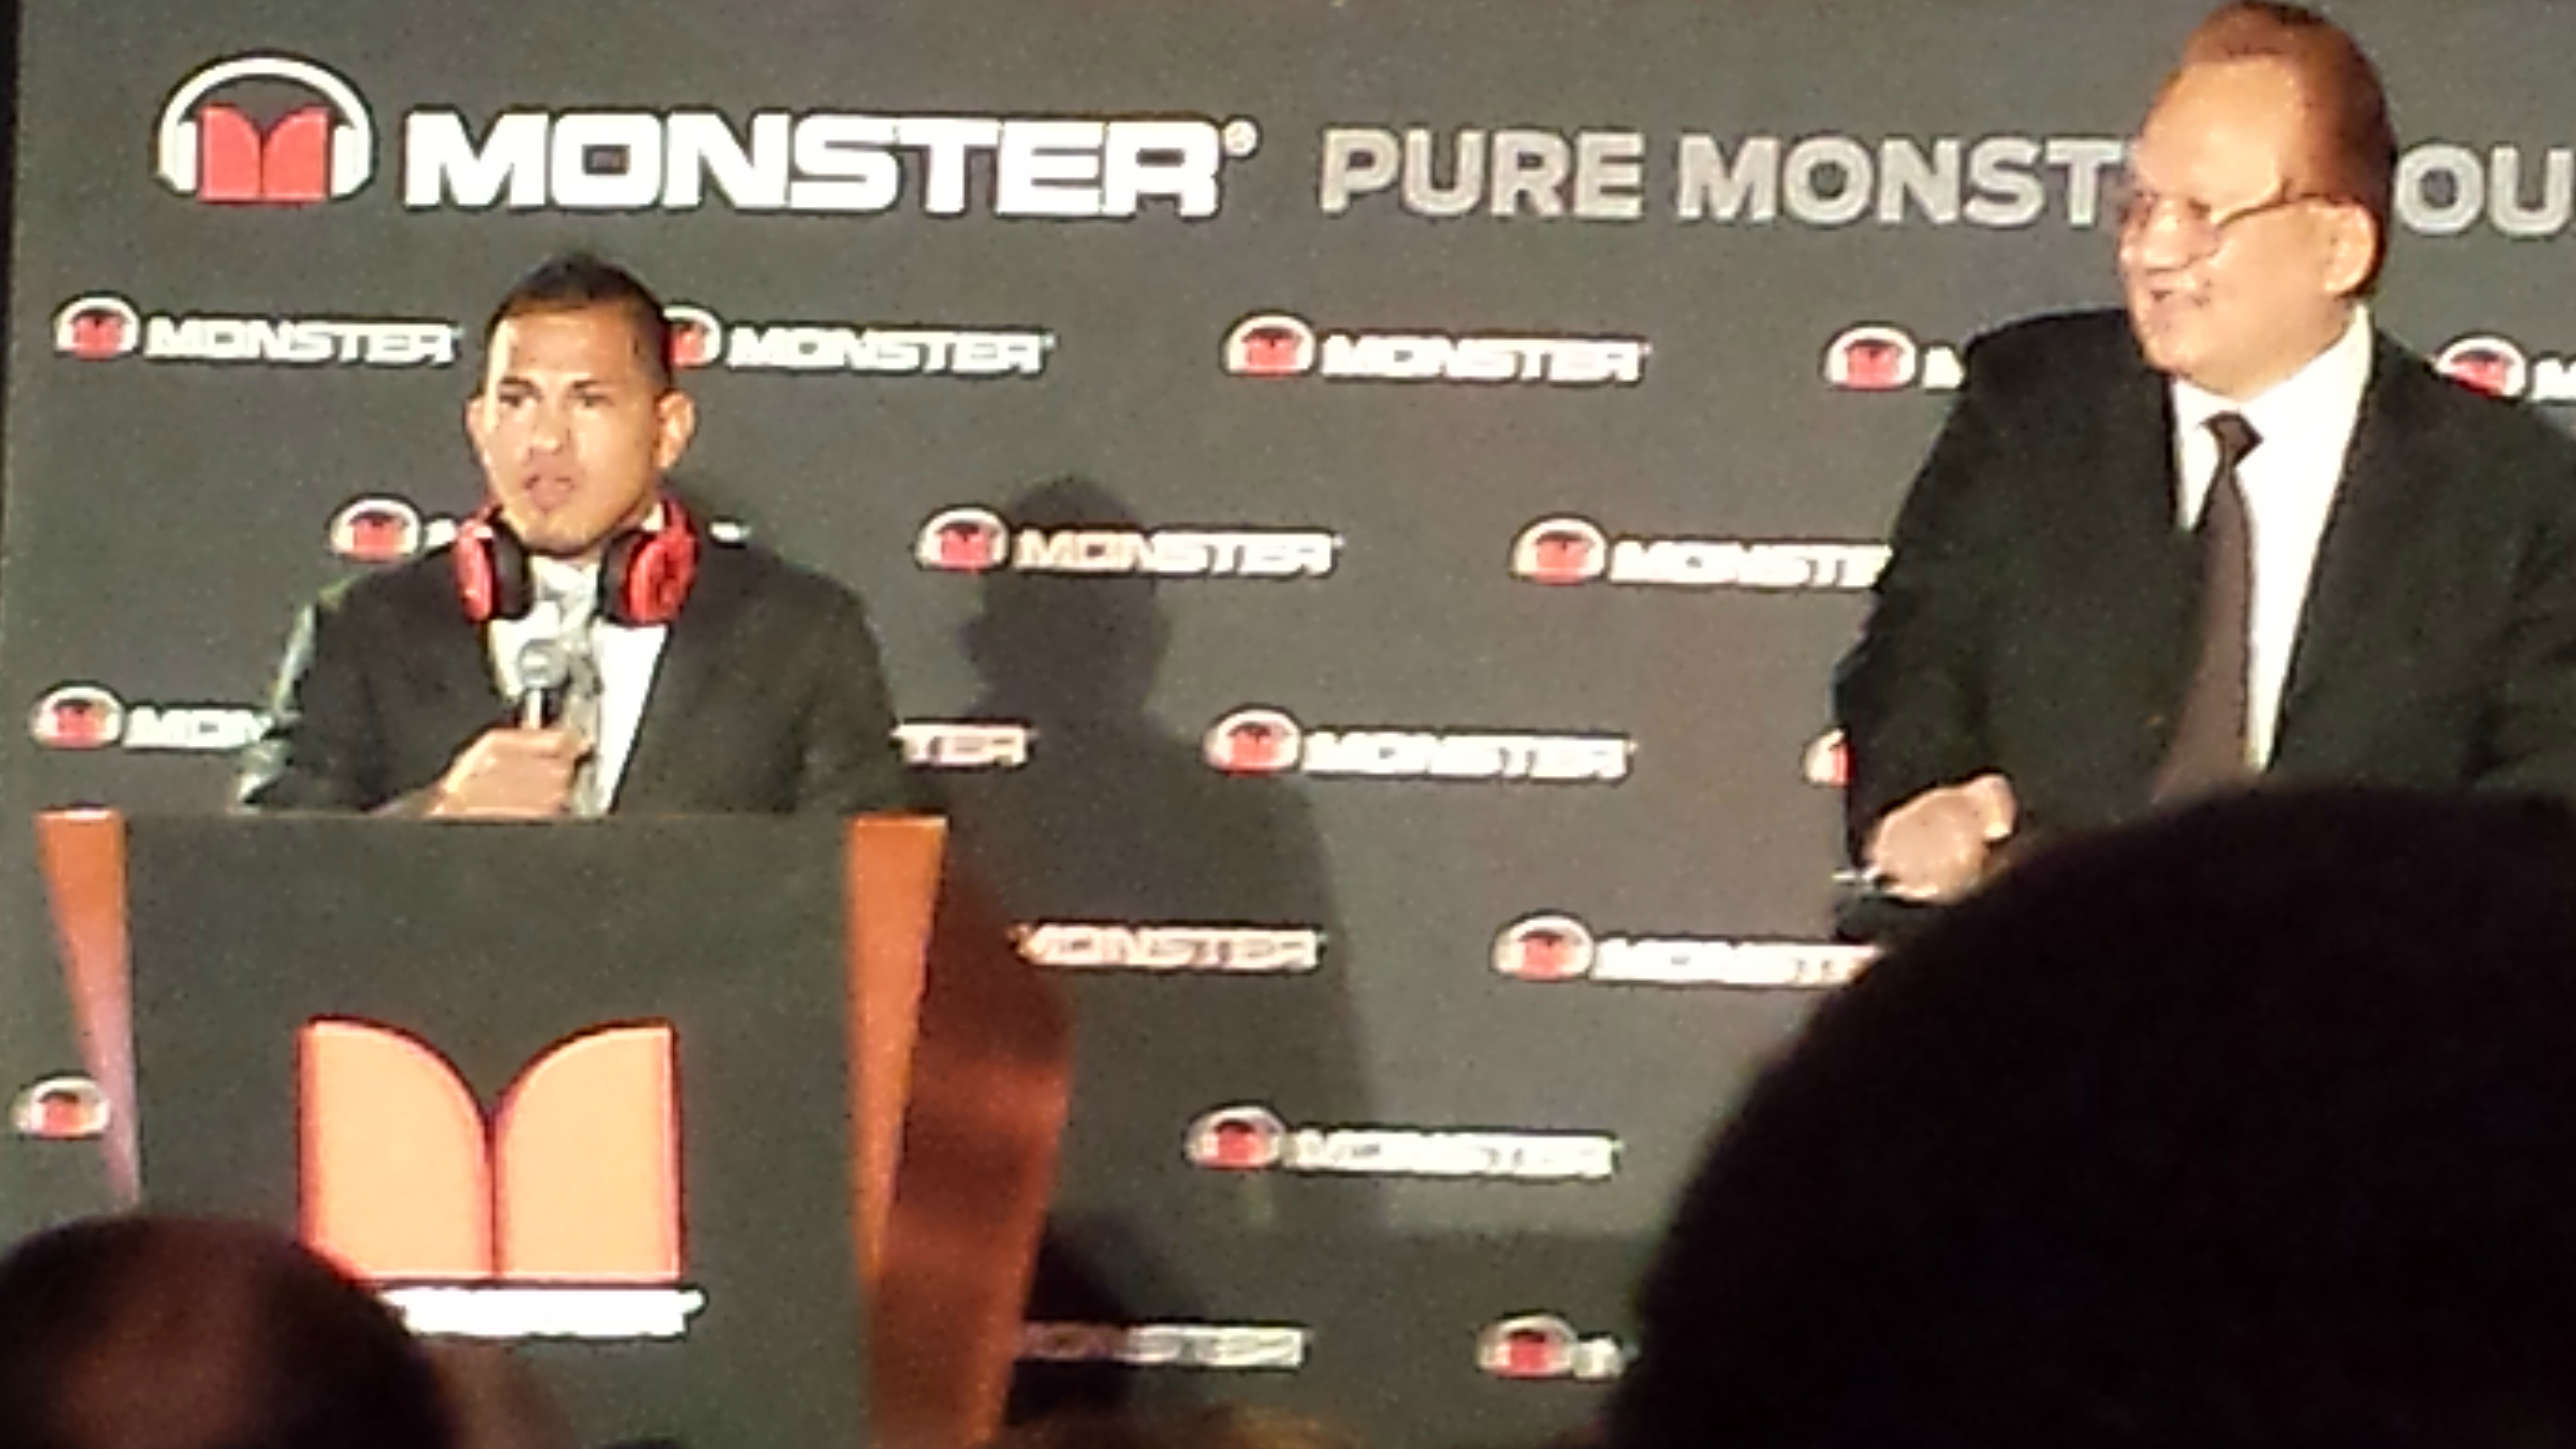 UFC champ Anthony Pettis announcing the Octagon headphones with Monster CEO Noel Lee.